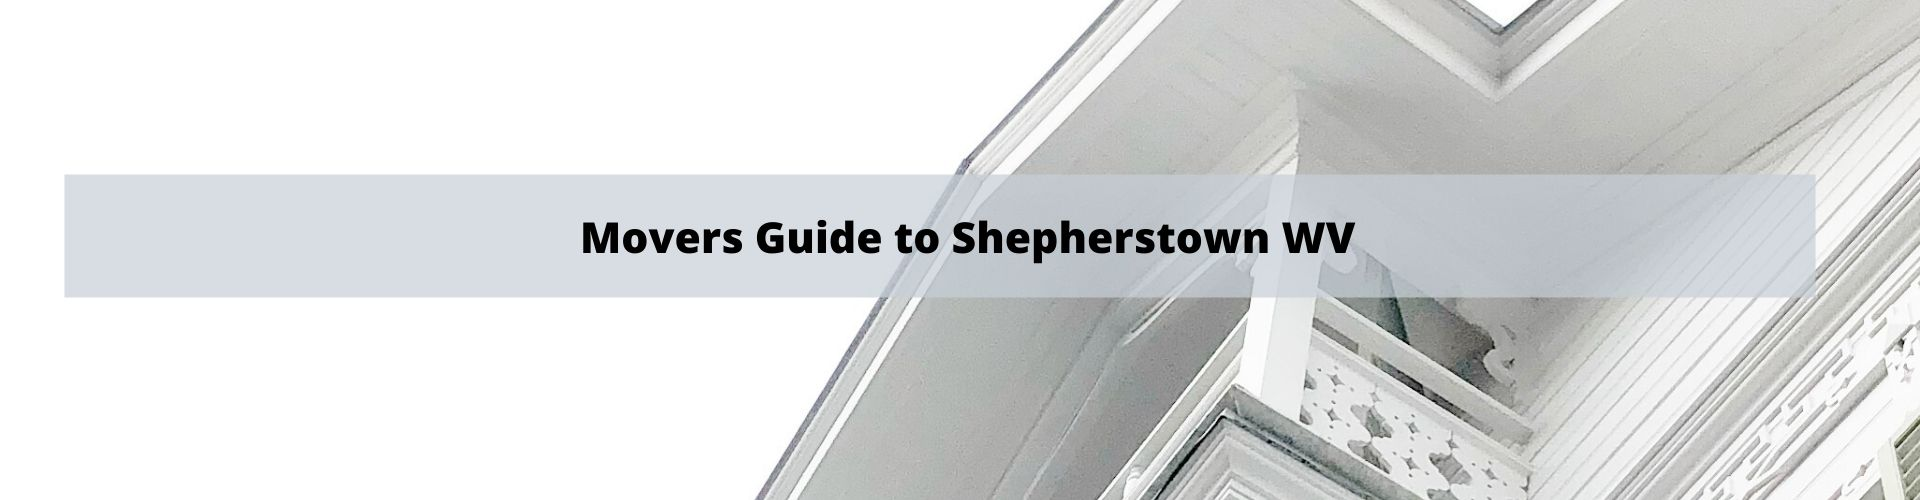 Mover's Guide to Shepherdstown WV